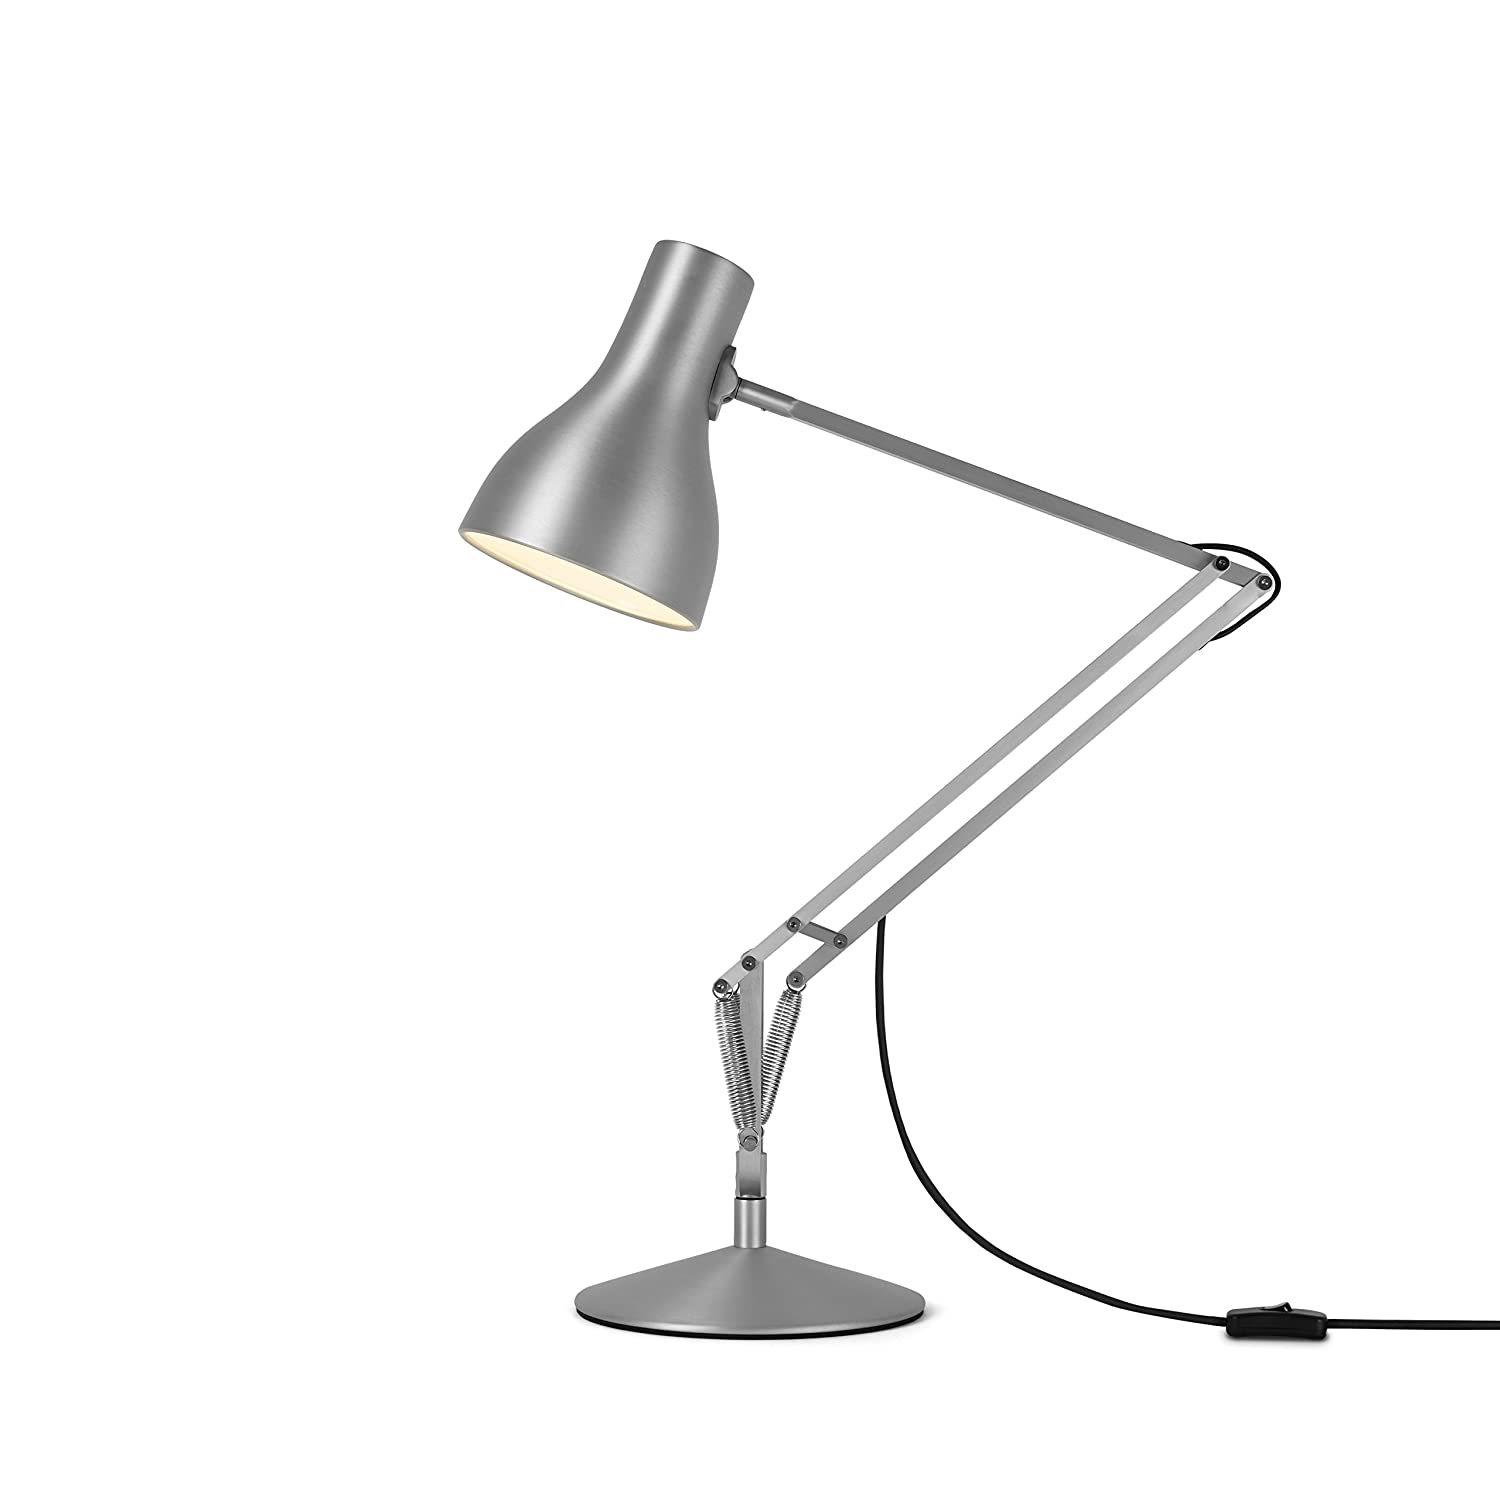 design carwardine year adopt an museum anglepoise lamp george designer object